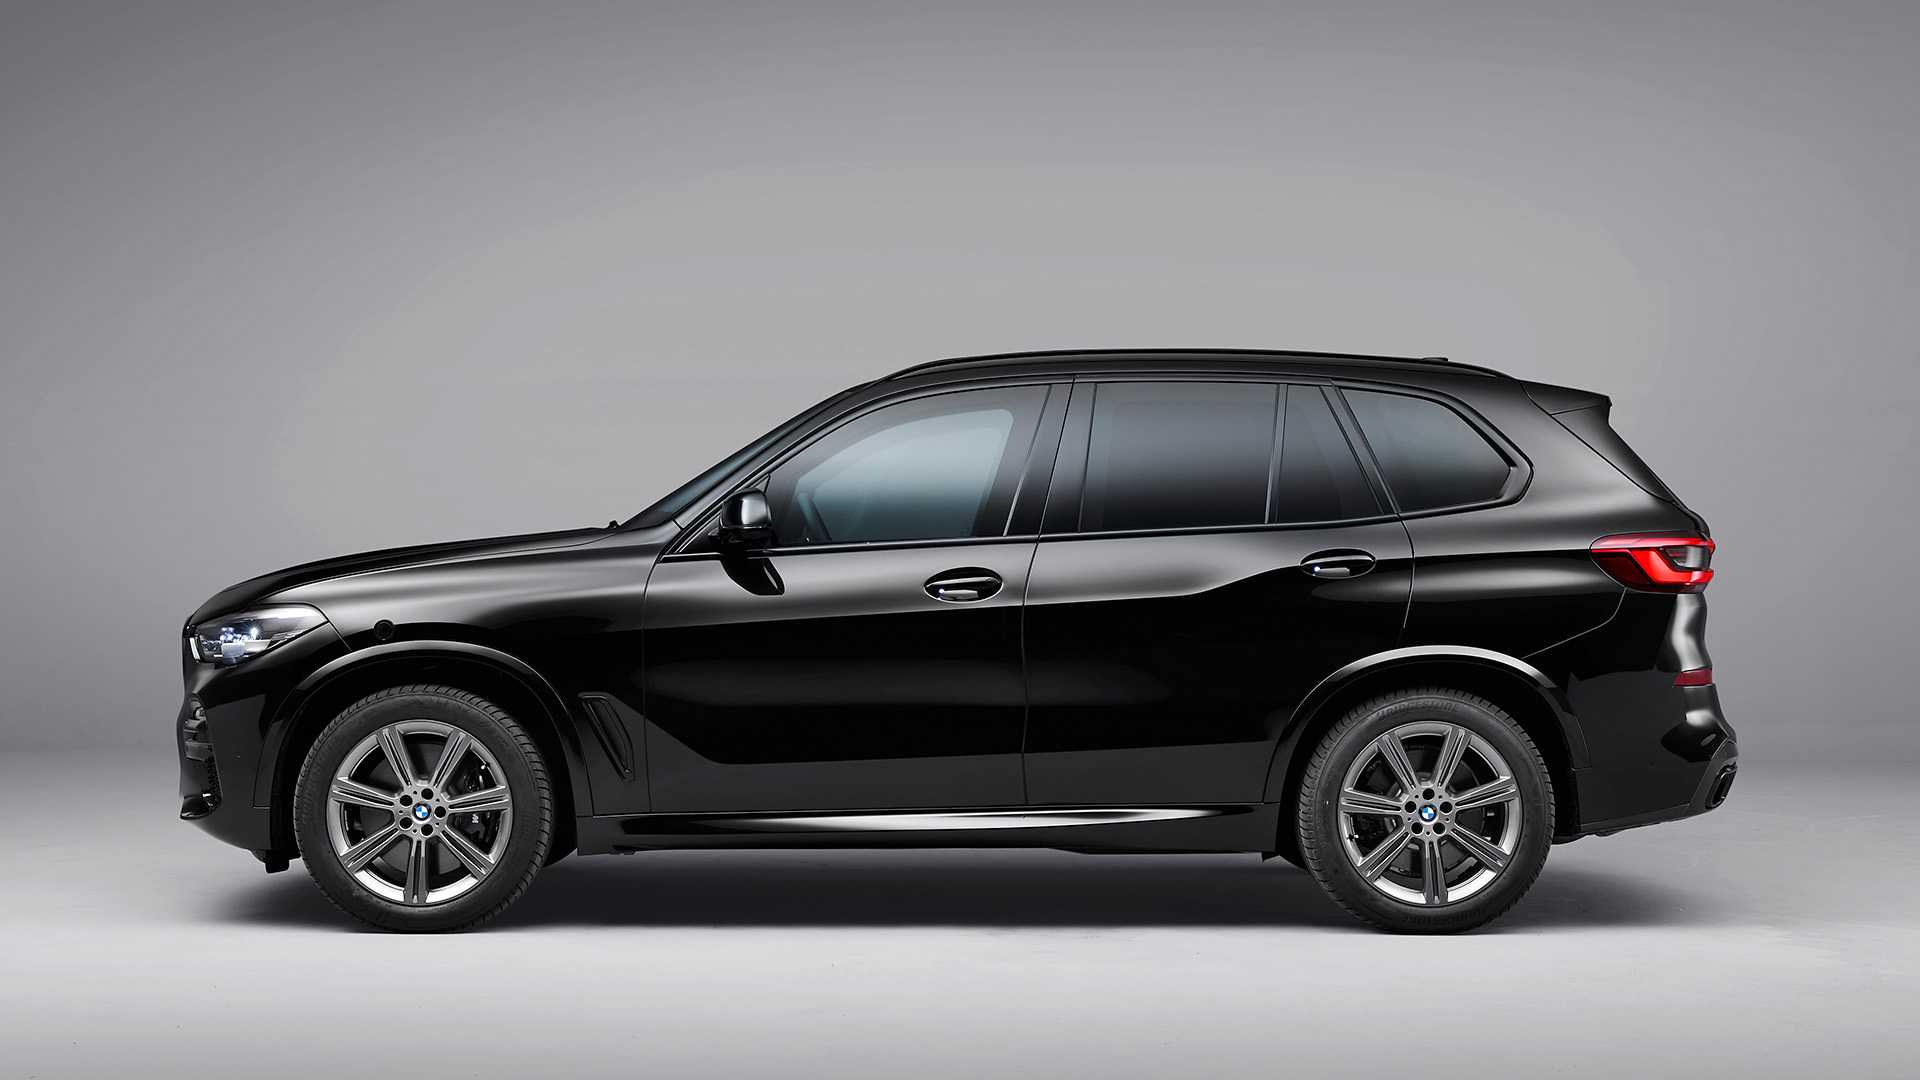 2020 BMW X5 Protection VR6 (Armored Vehicle) Side Wallpapers (5)